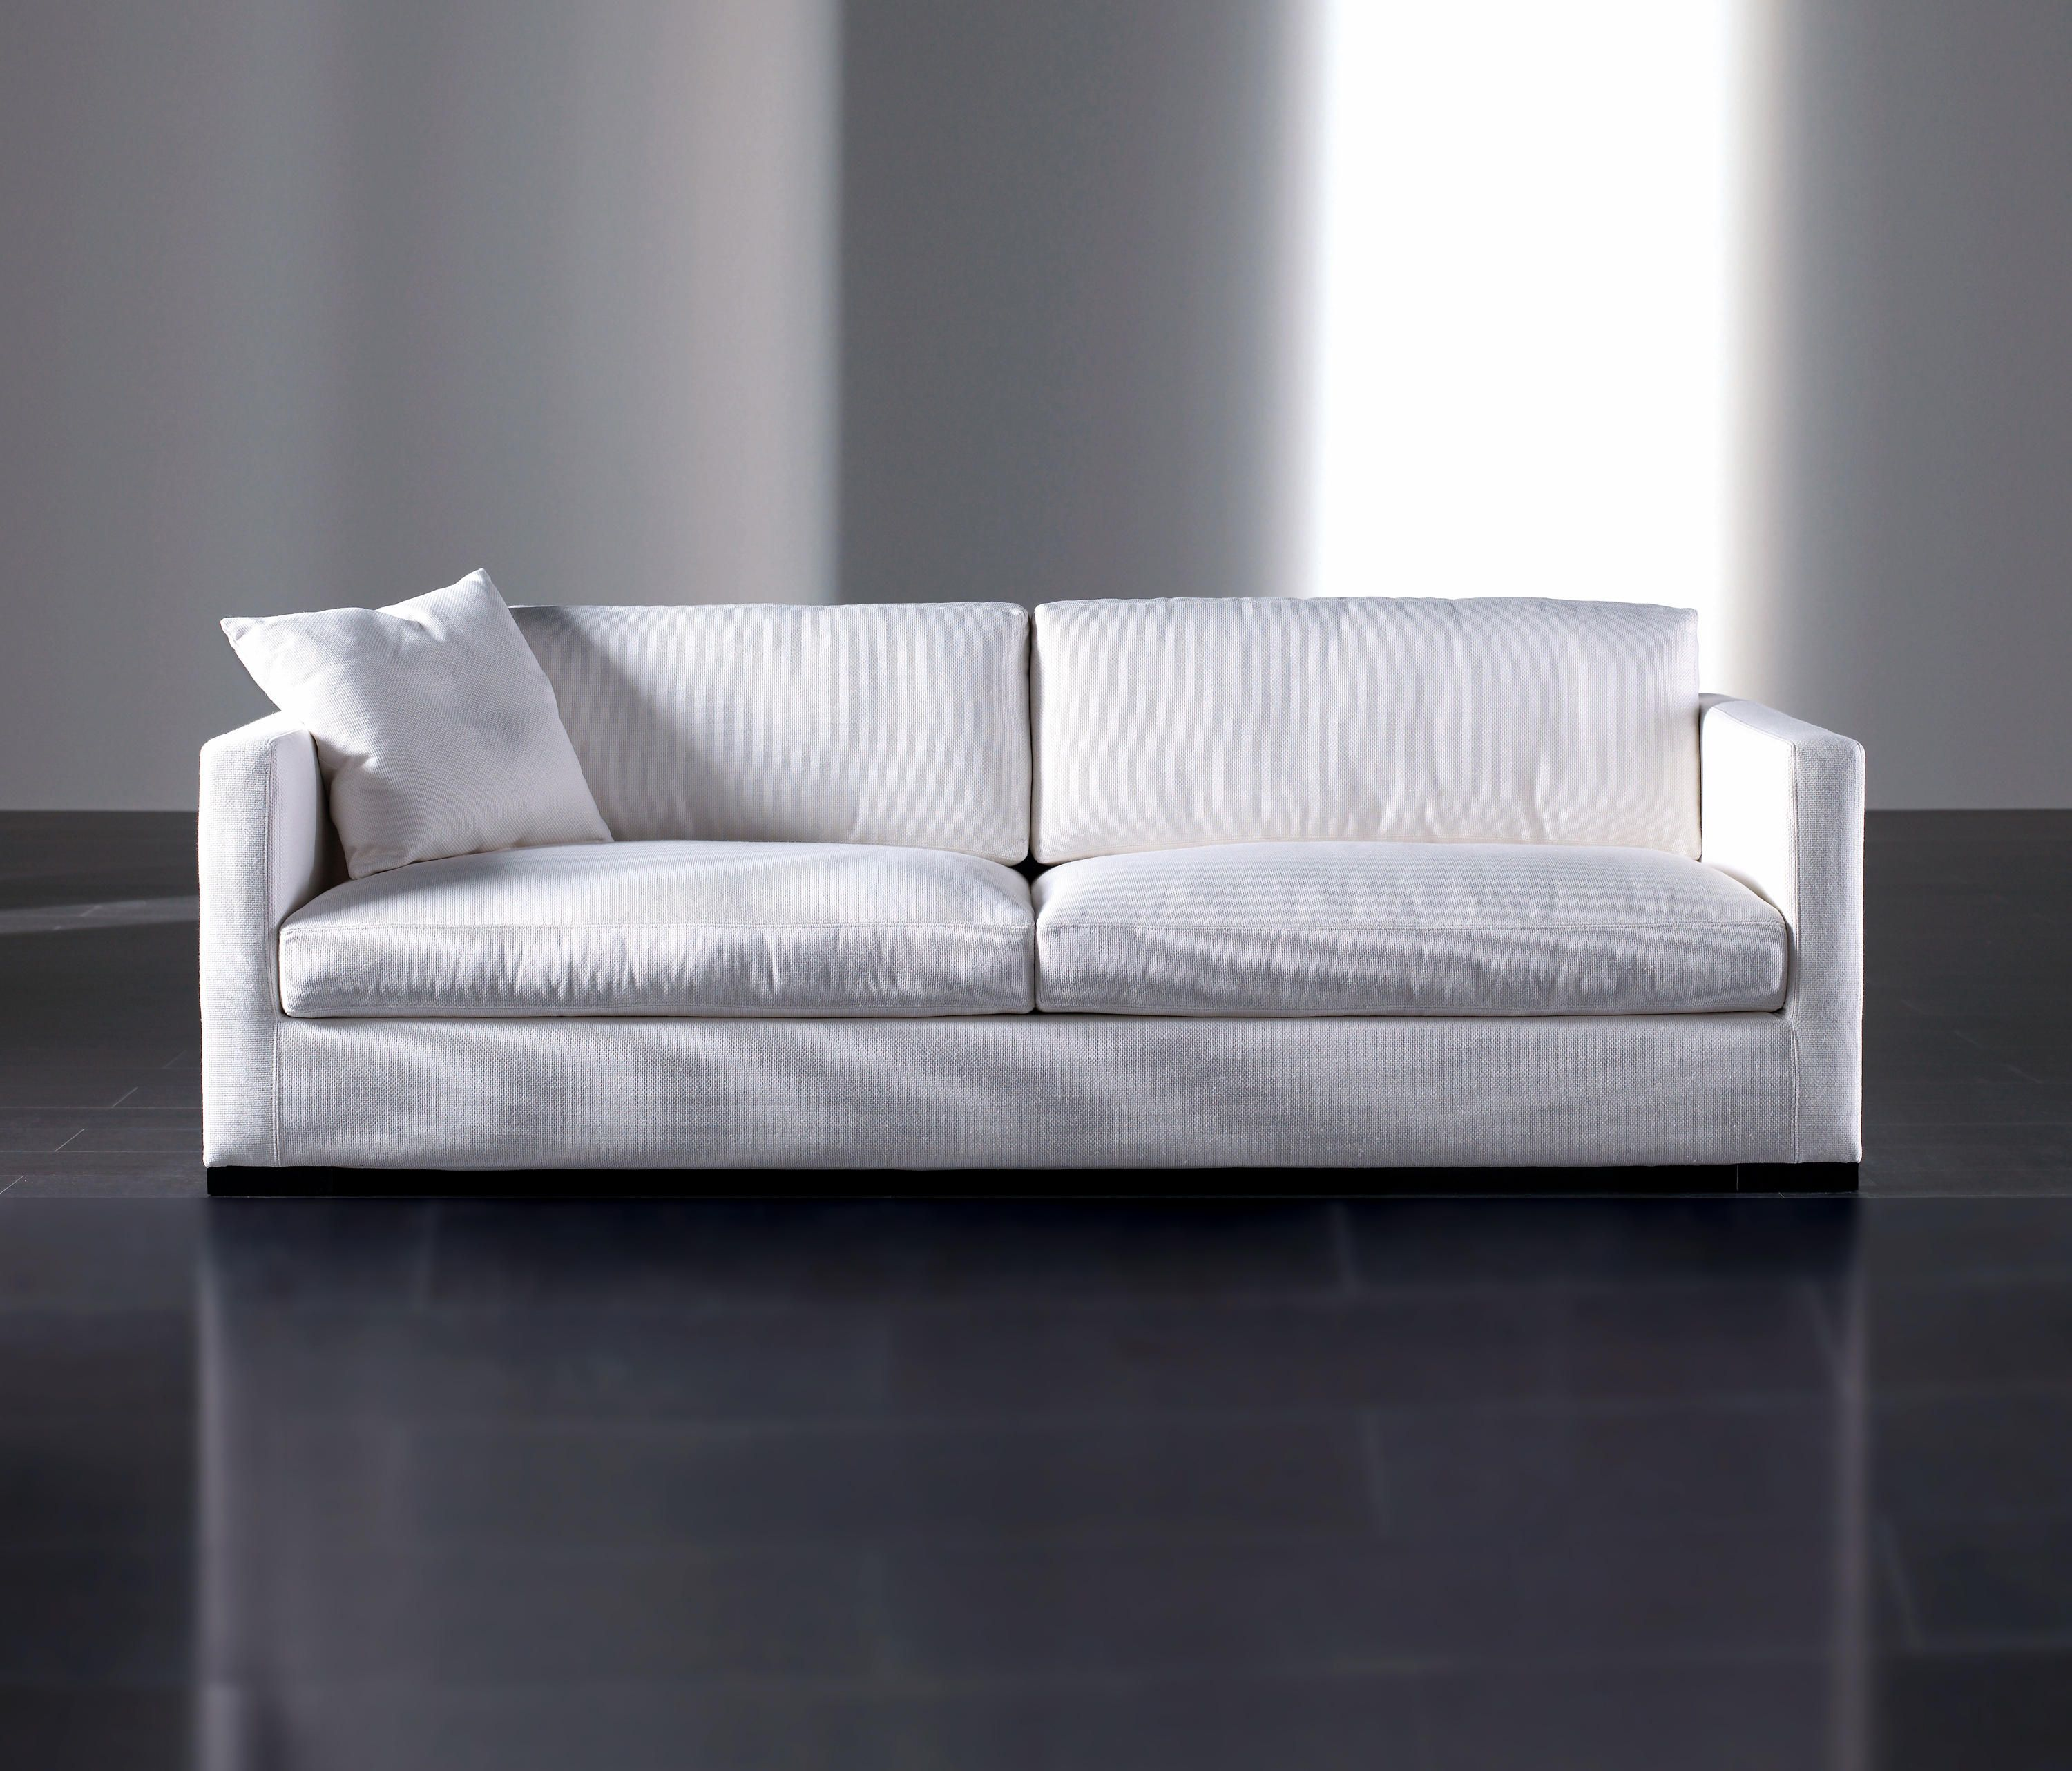 Belmon Sofa Sofa Bed Designer Sofas From Meridiani All Information High Resolution Images Cads Catalogues Contact I Sofa Bed Living Sofa Bed Sofa